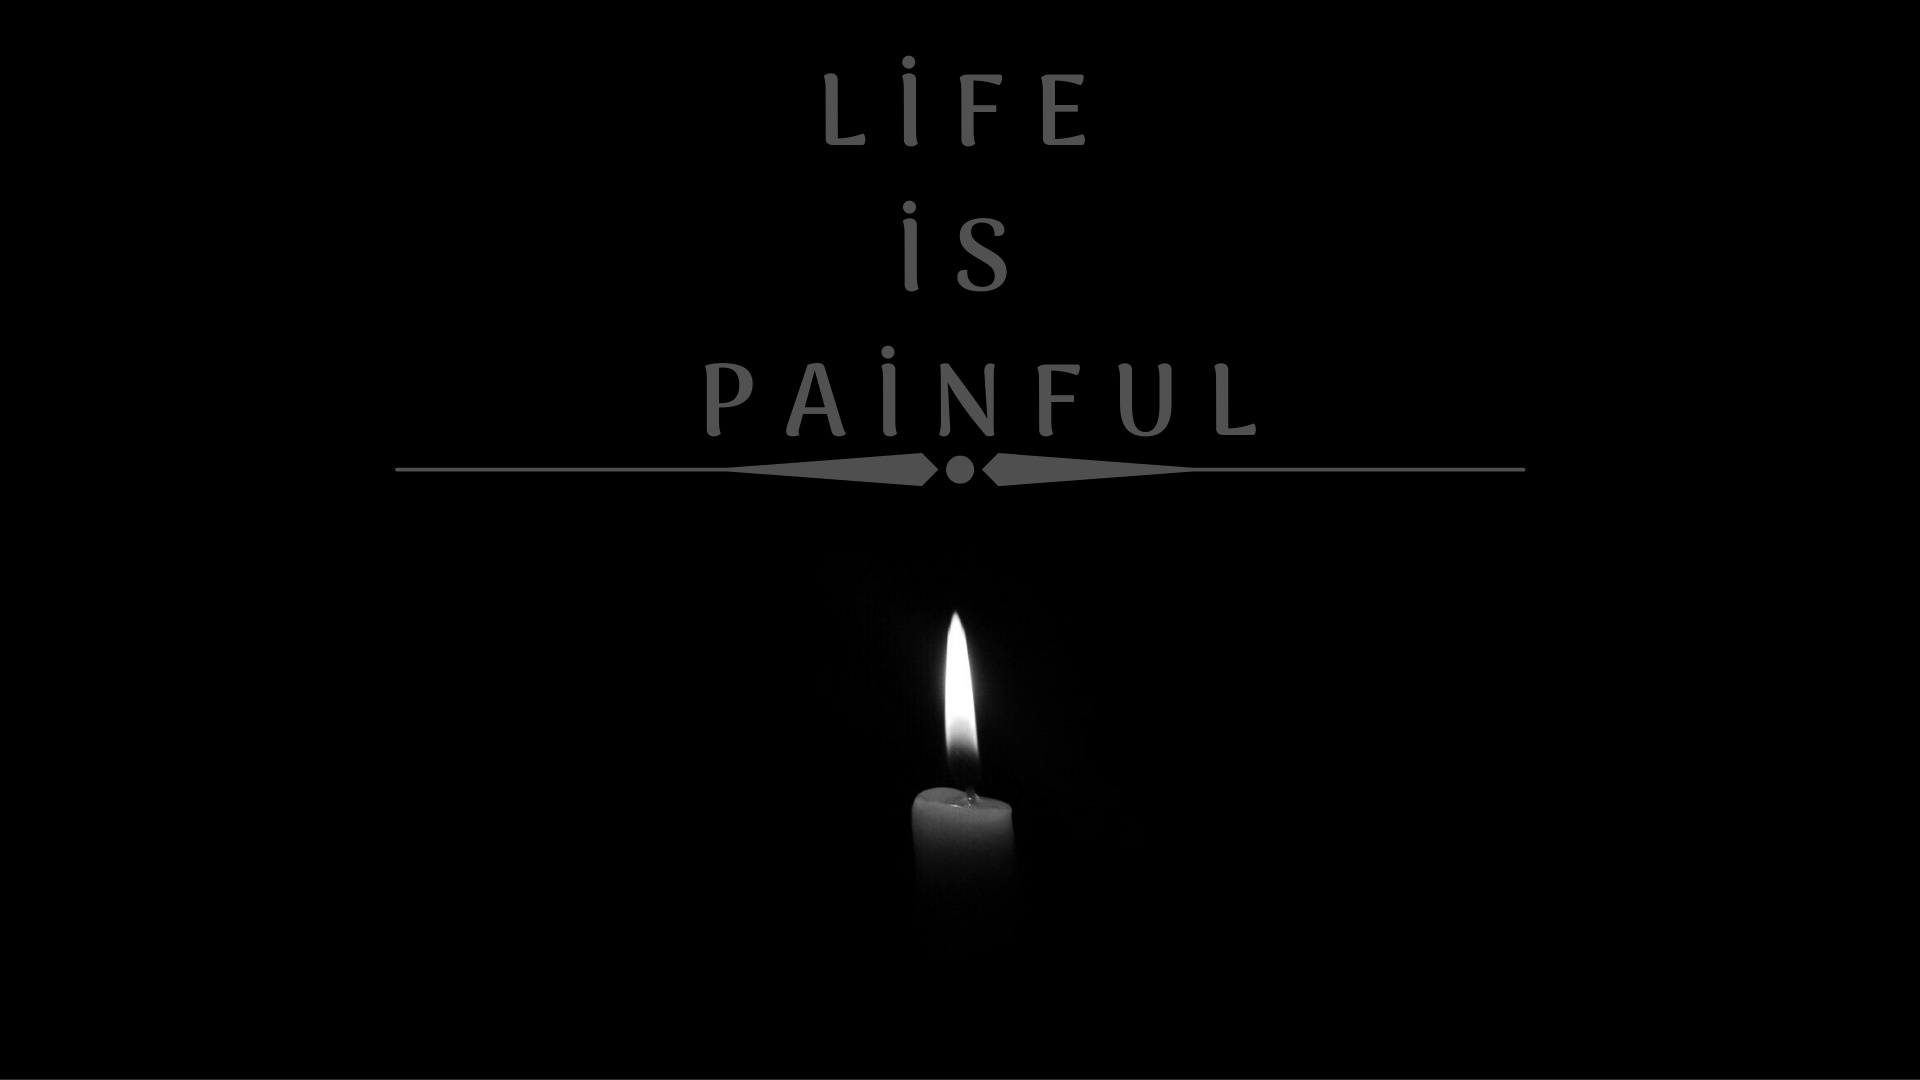 life is painful wallpaper